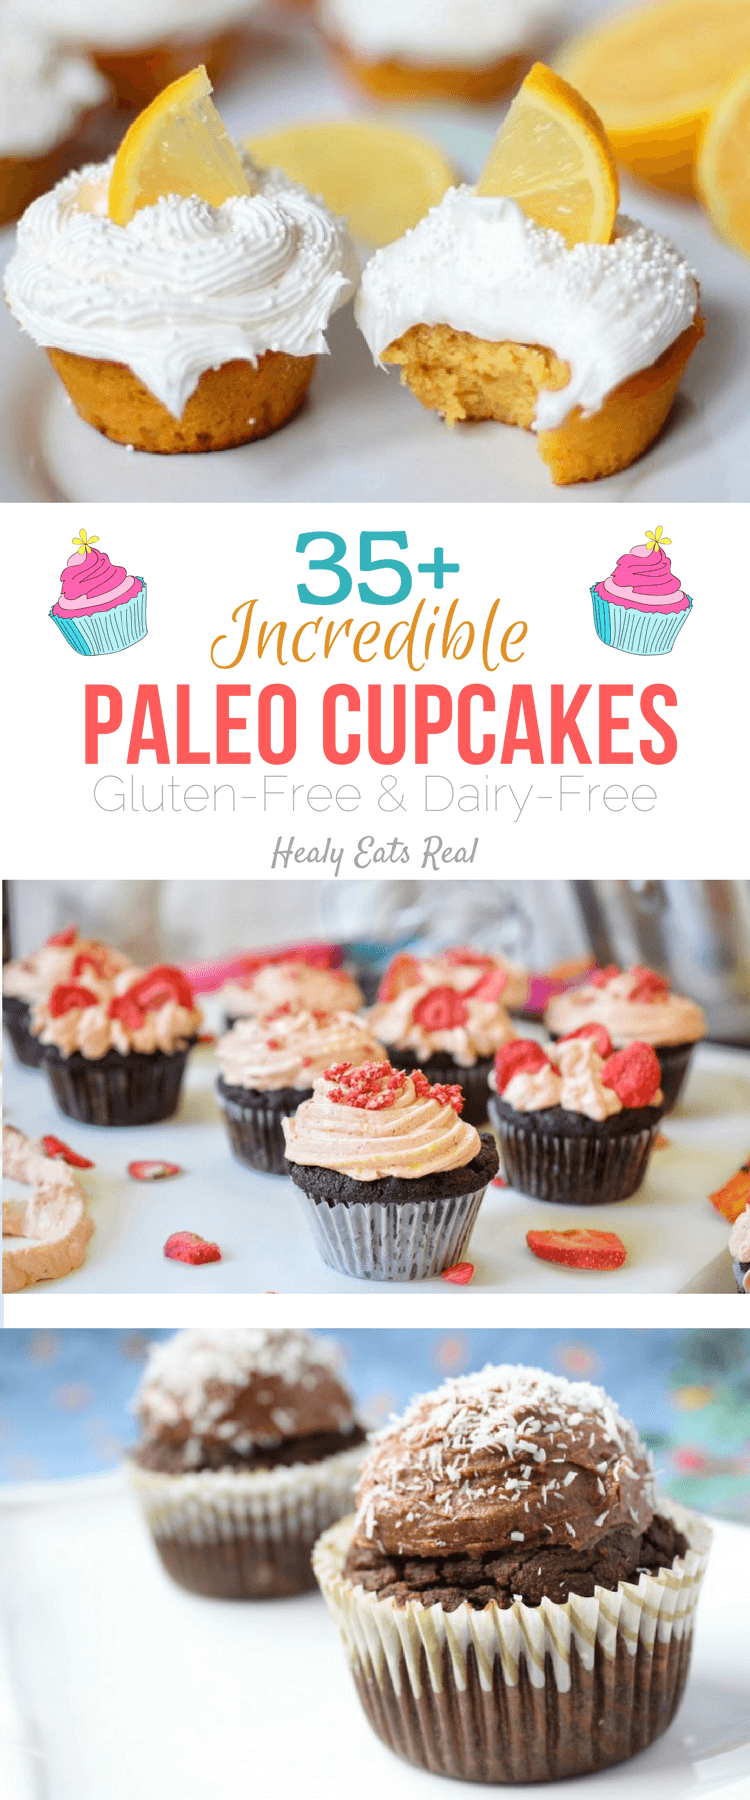 35+ Incredible Paleo Cupcakes (Gluten Free & Dairy Free)